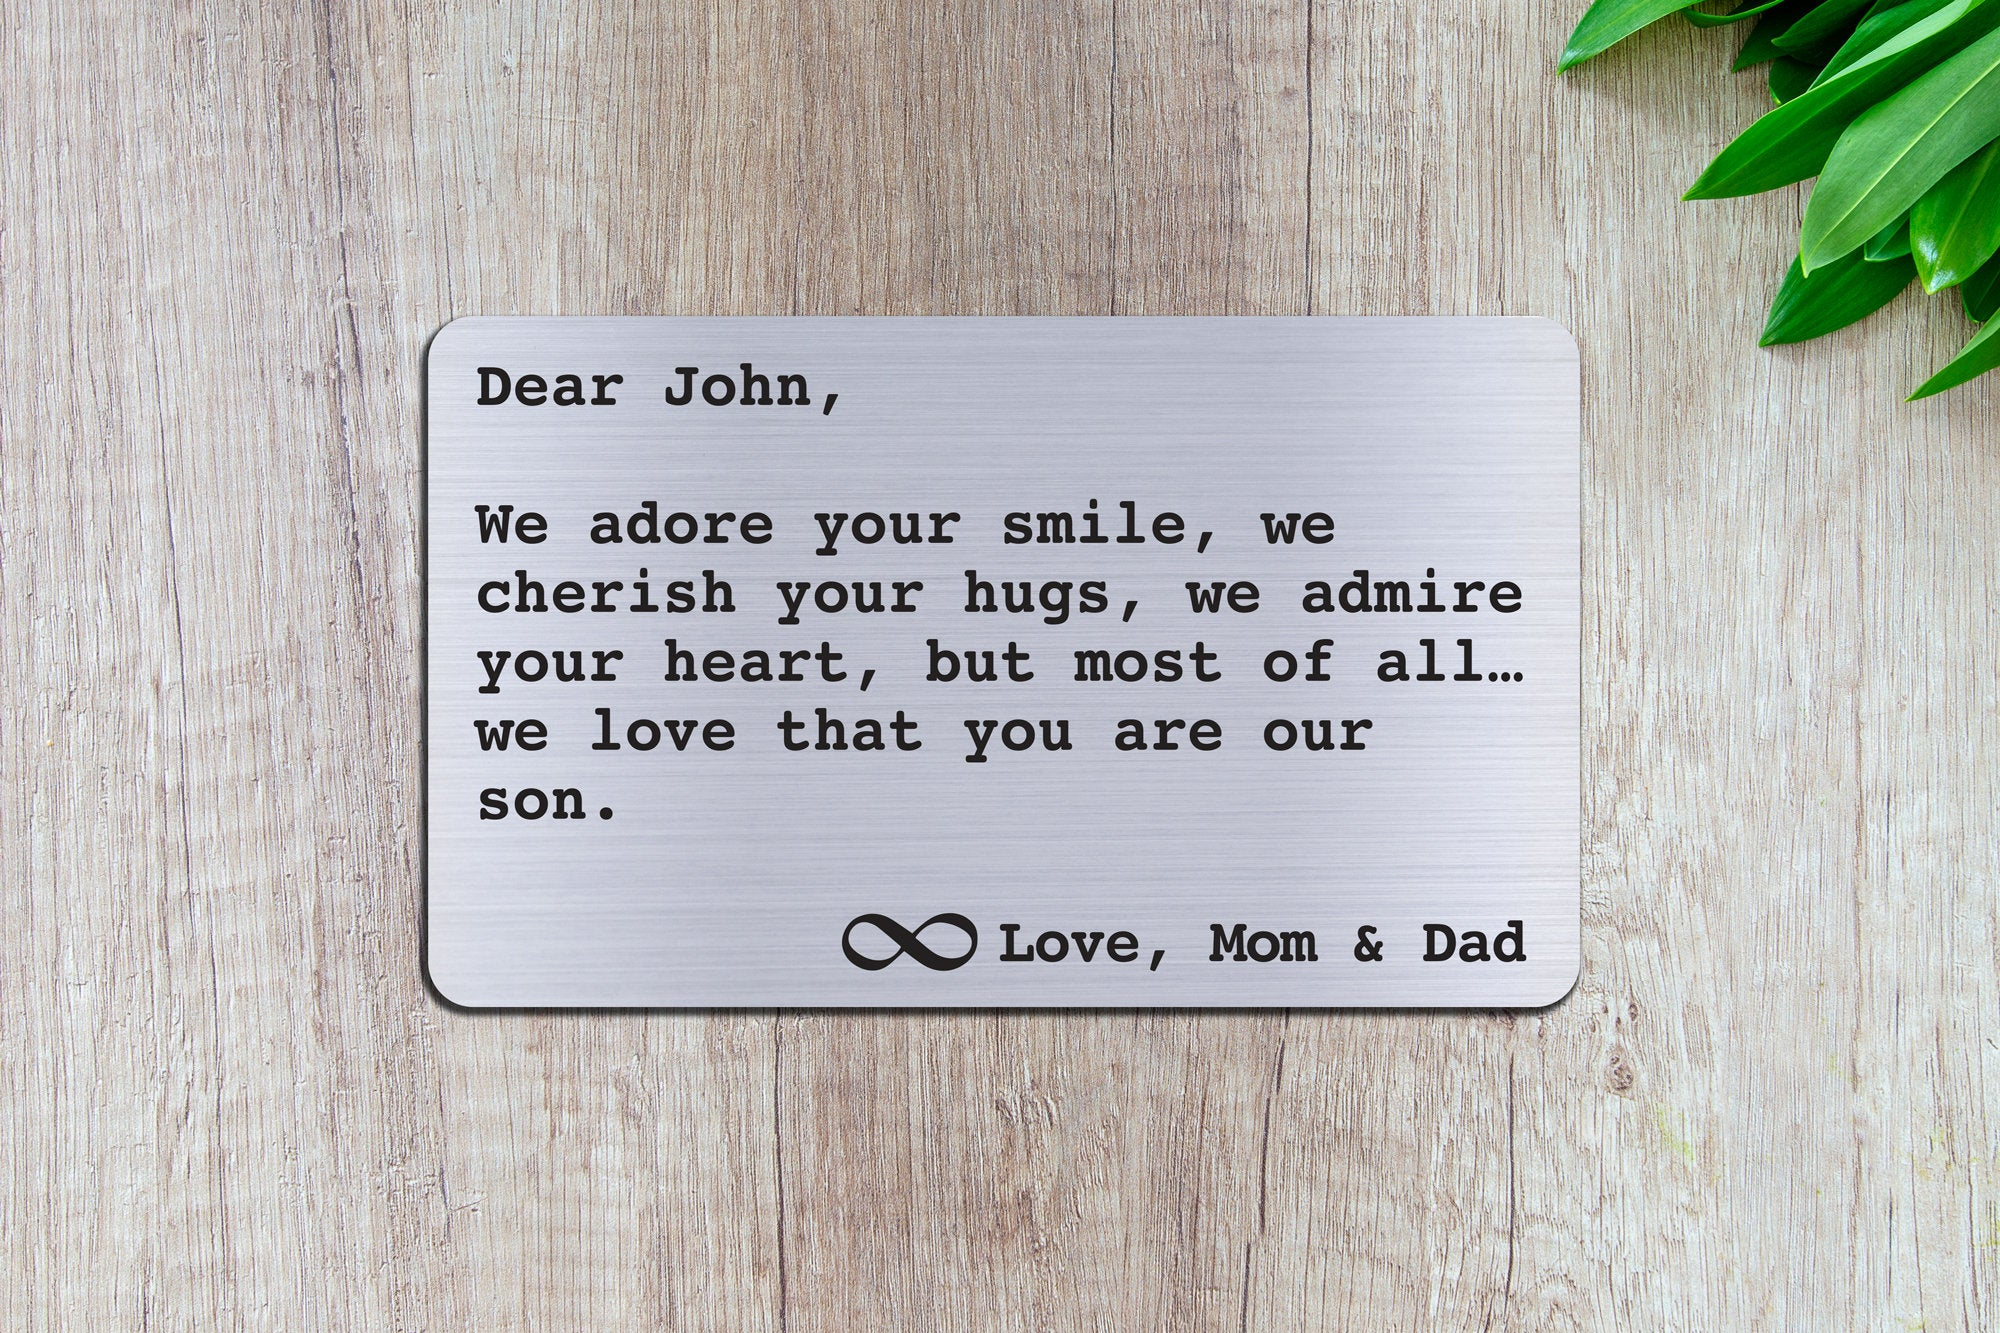 Personalized Wallet Card Insert - We adore your smile son - Silver